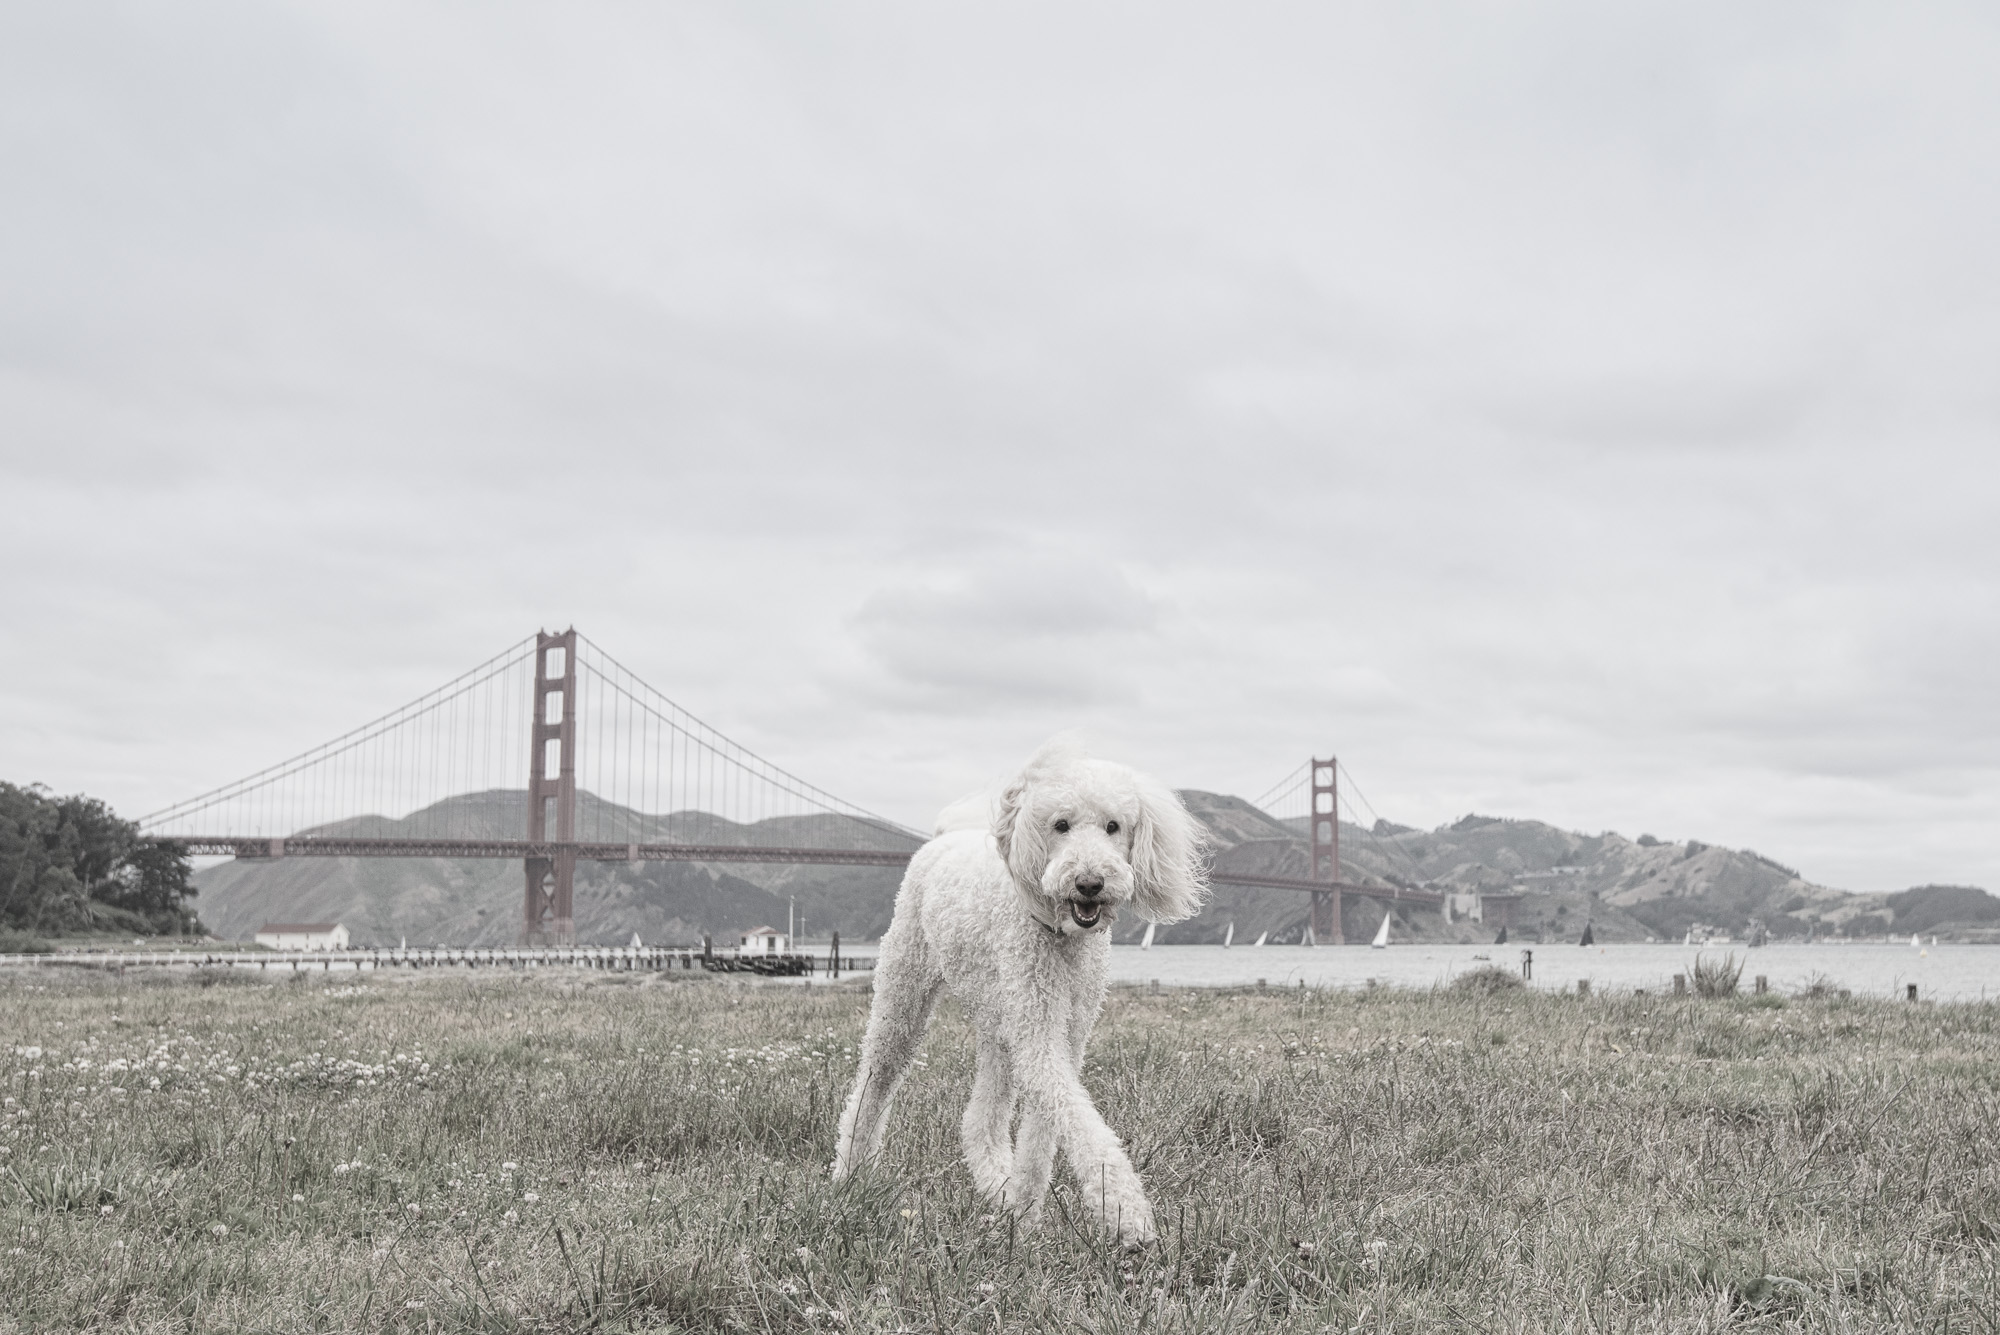 He's a 10 year old labradoodle named Ollie.